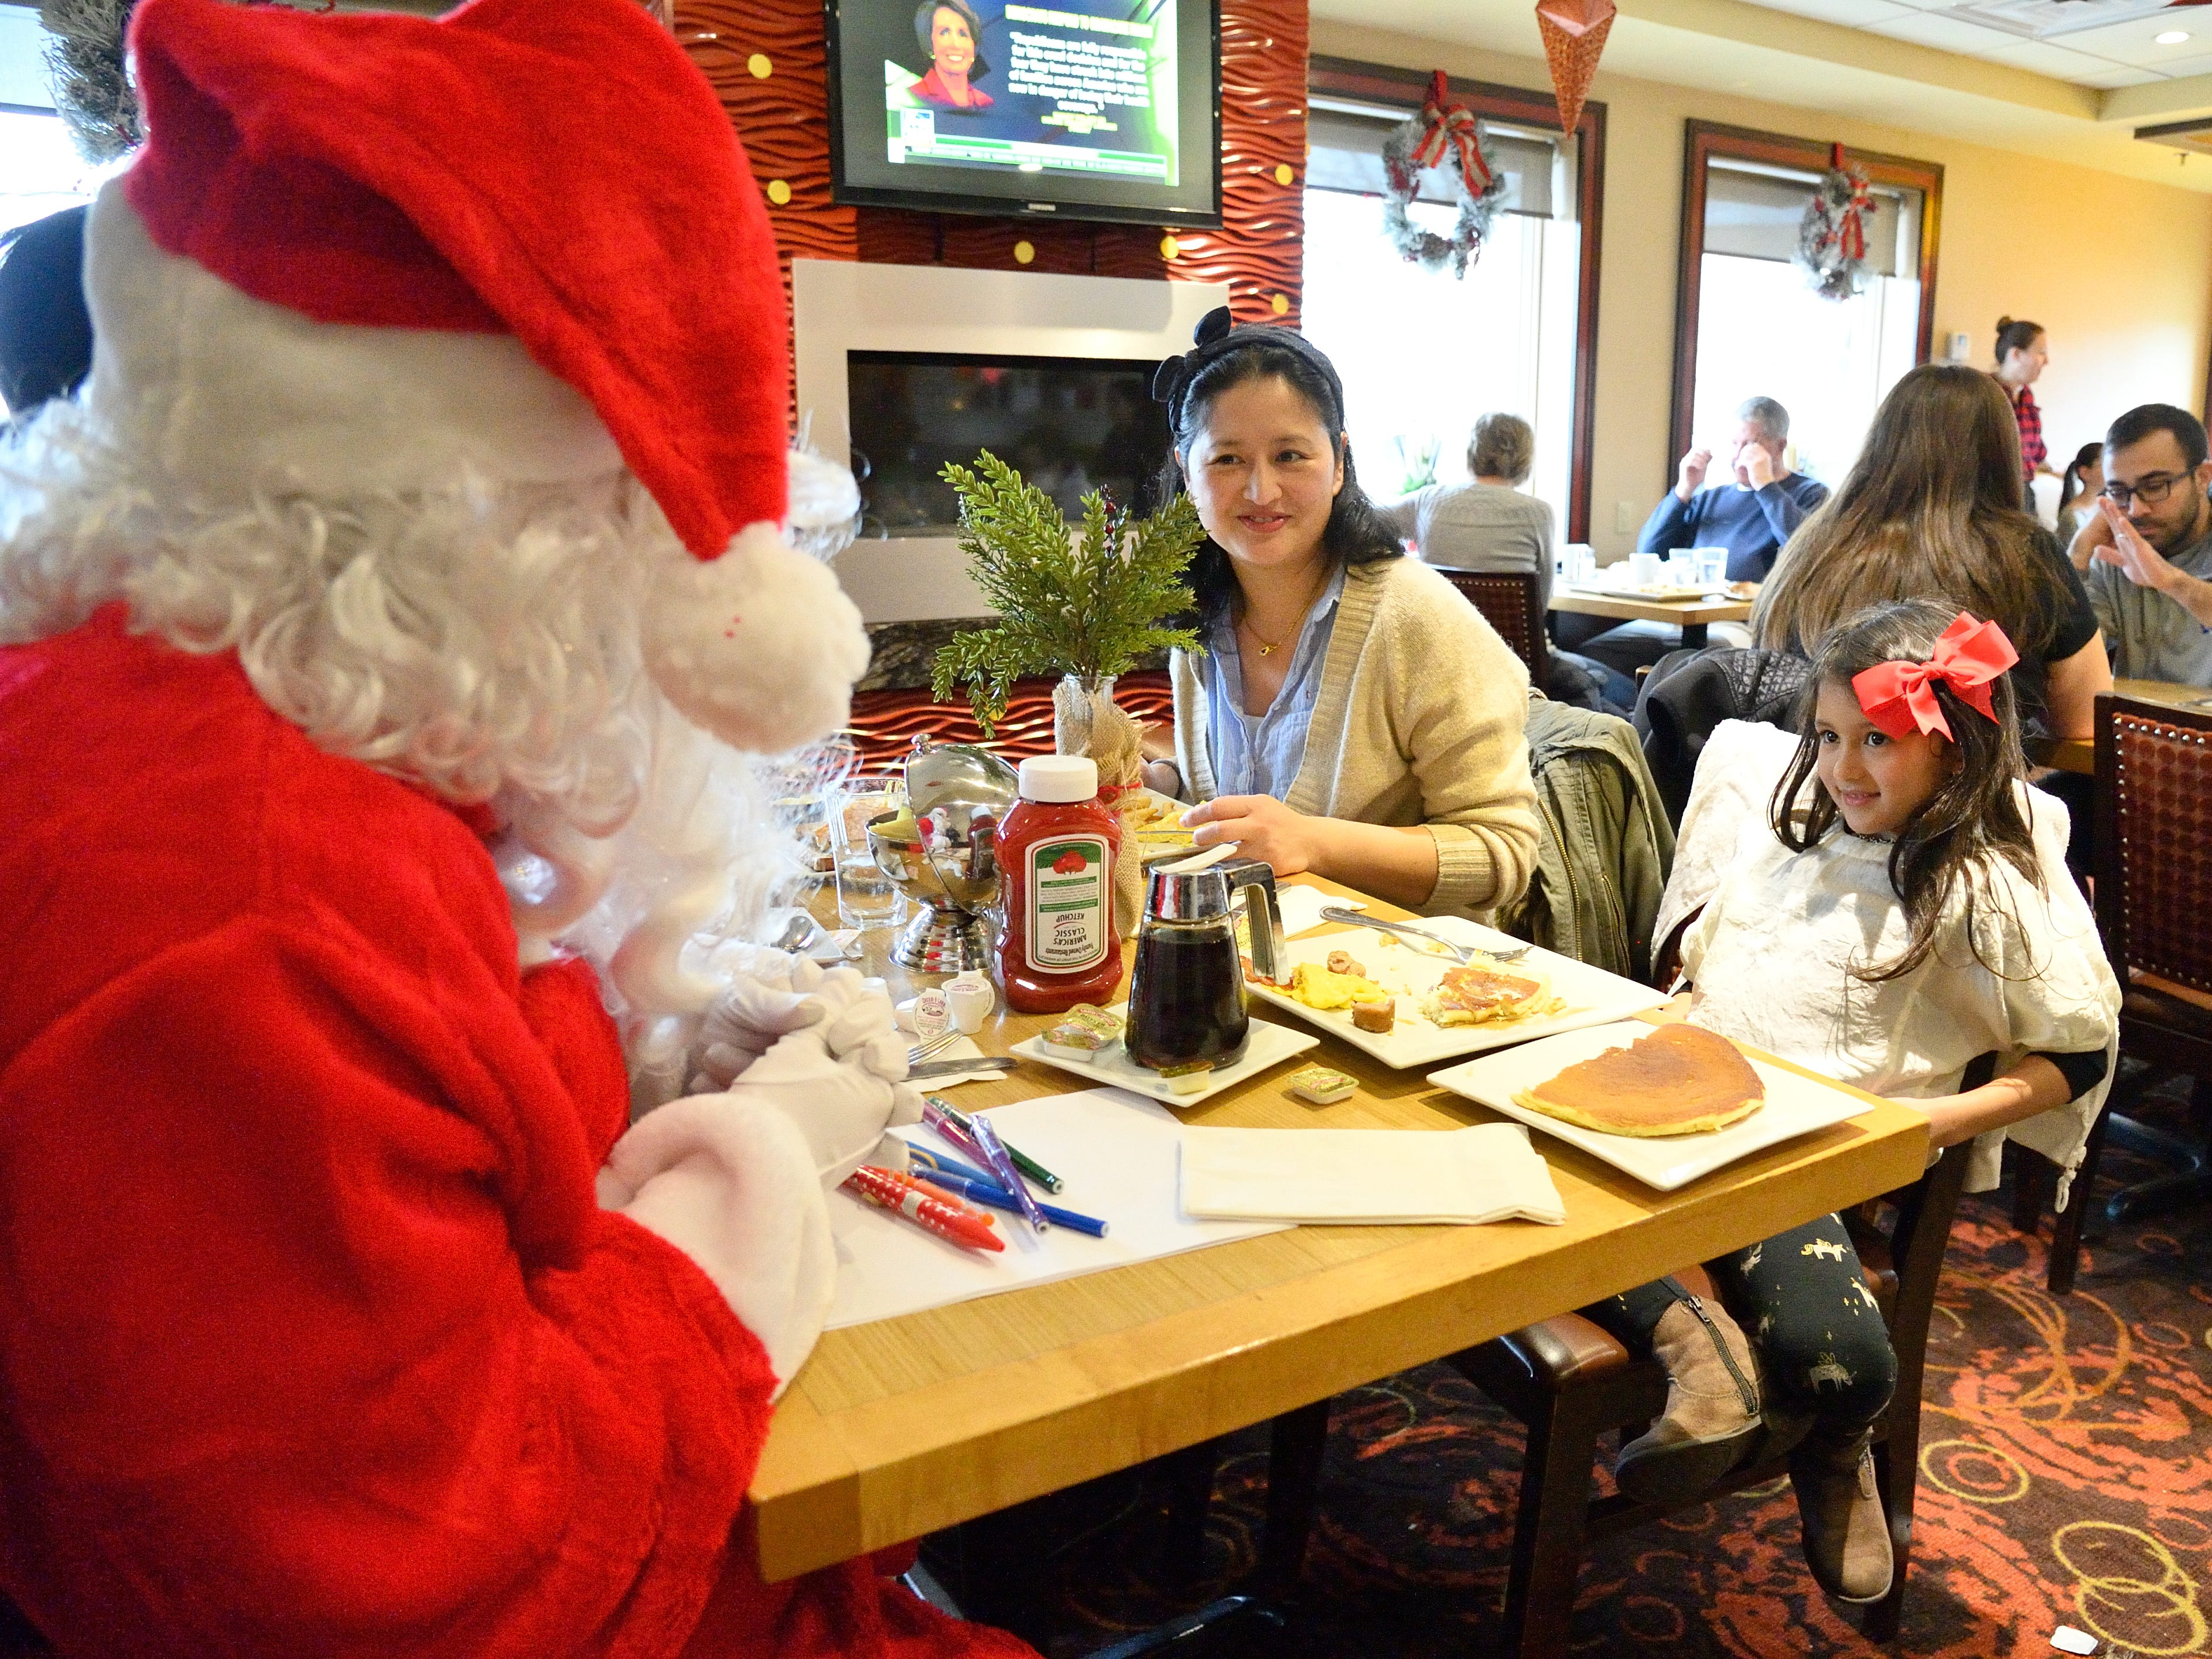 Santa greets Issara Hangsapruk and her mom Sonali at the Candlewyck Diner in East Rutherford on Saturday, Dec. 15, 2018